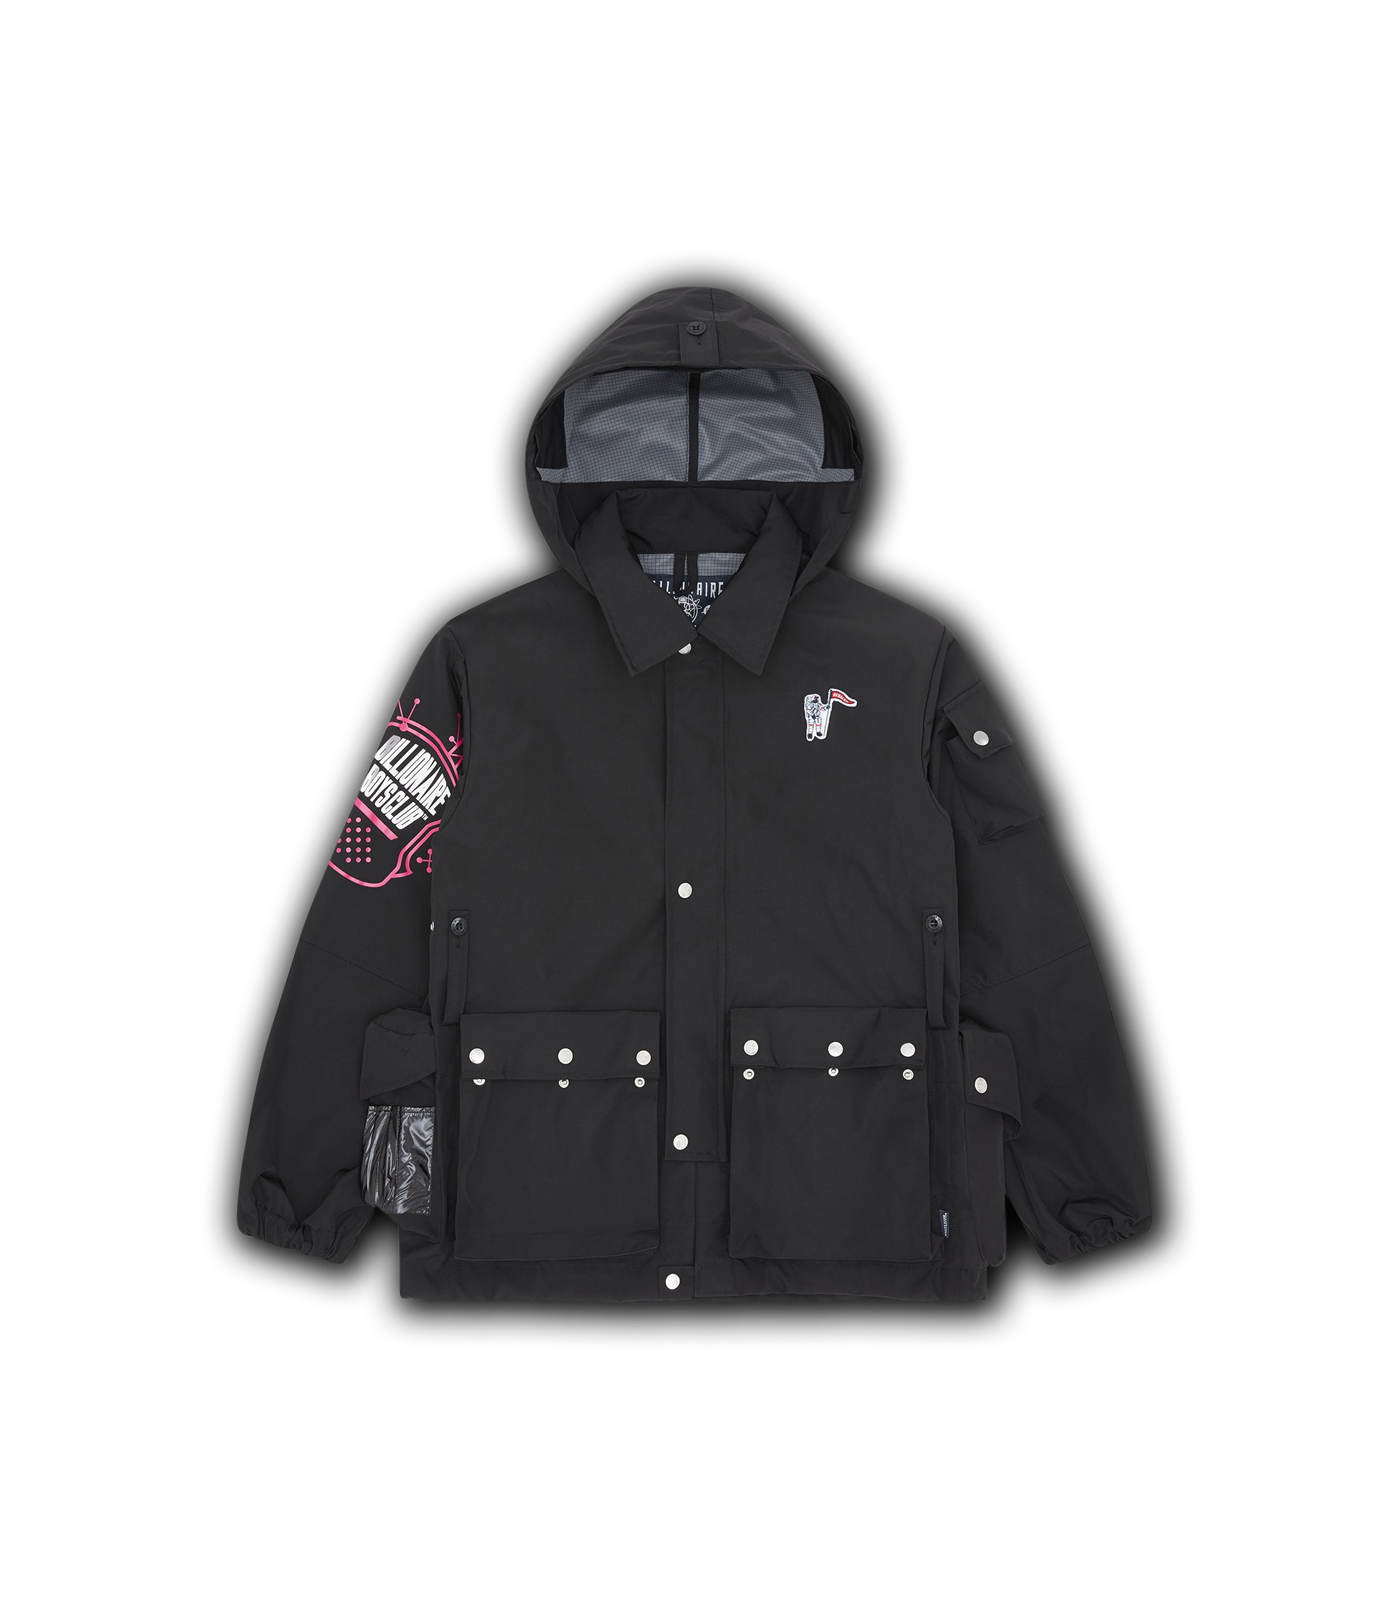 M70 FIELD JACKET - BLACK